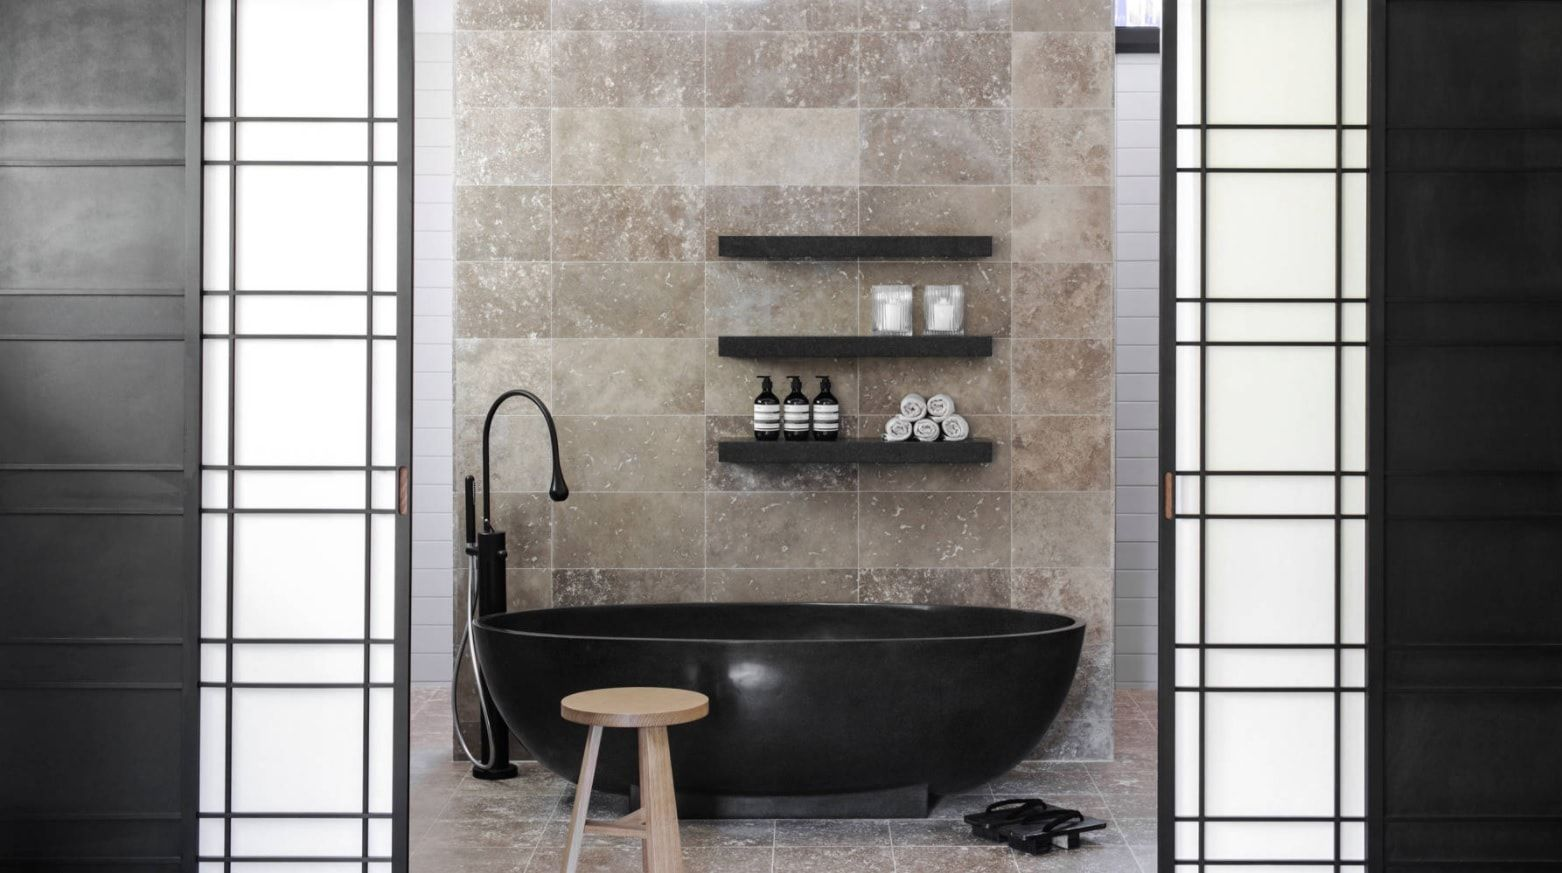 Contemporary Oriental styled black bathtub with tap and top shelves for gray marble trimmed room